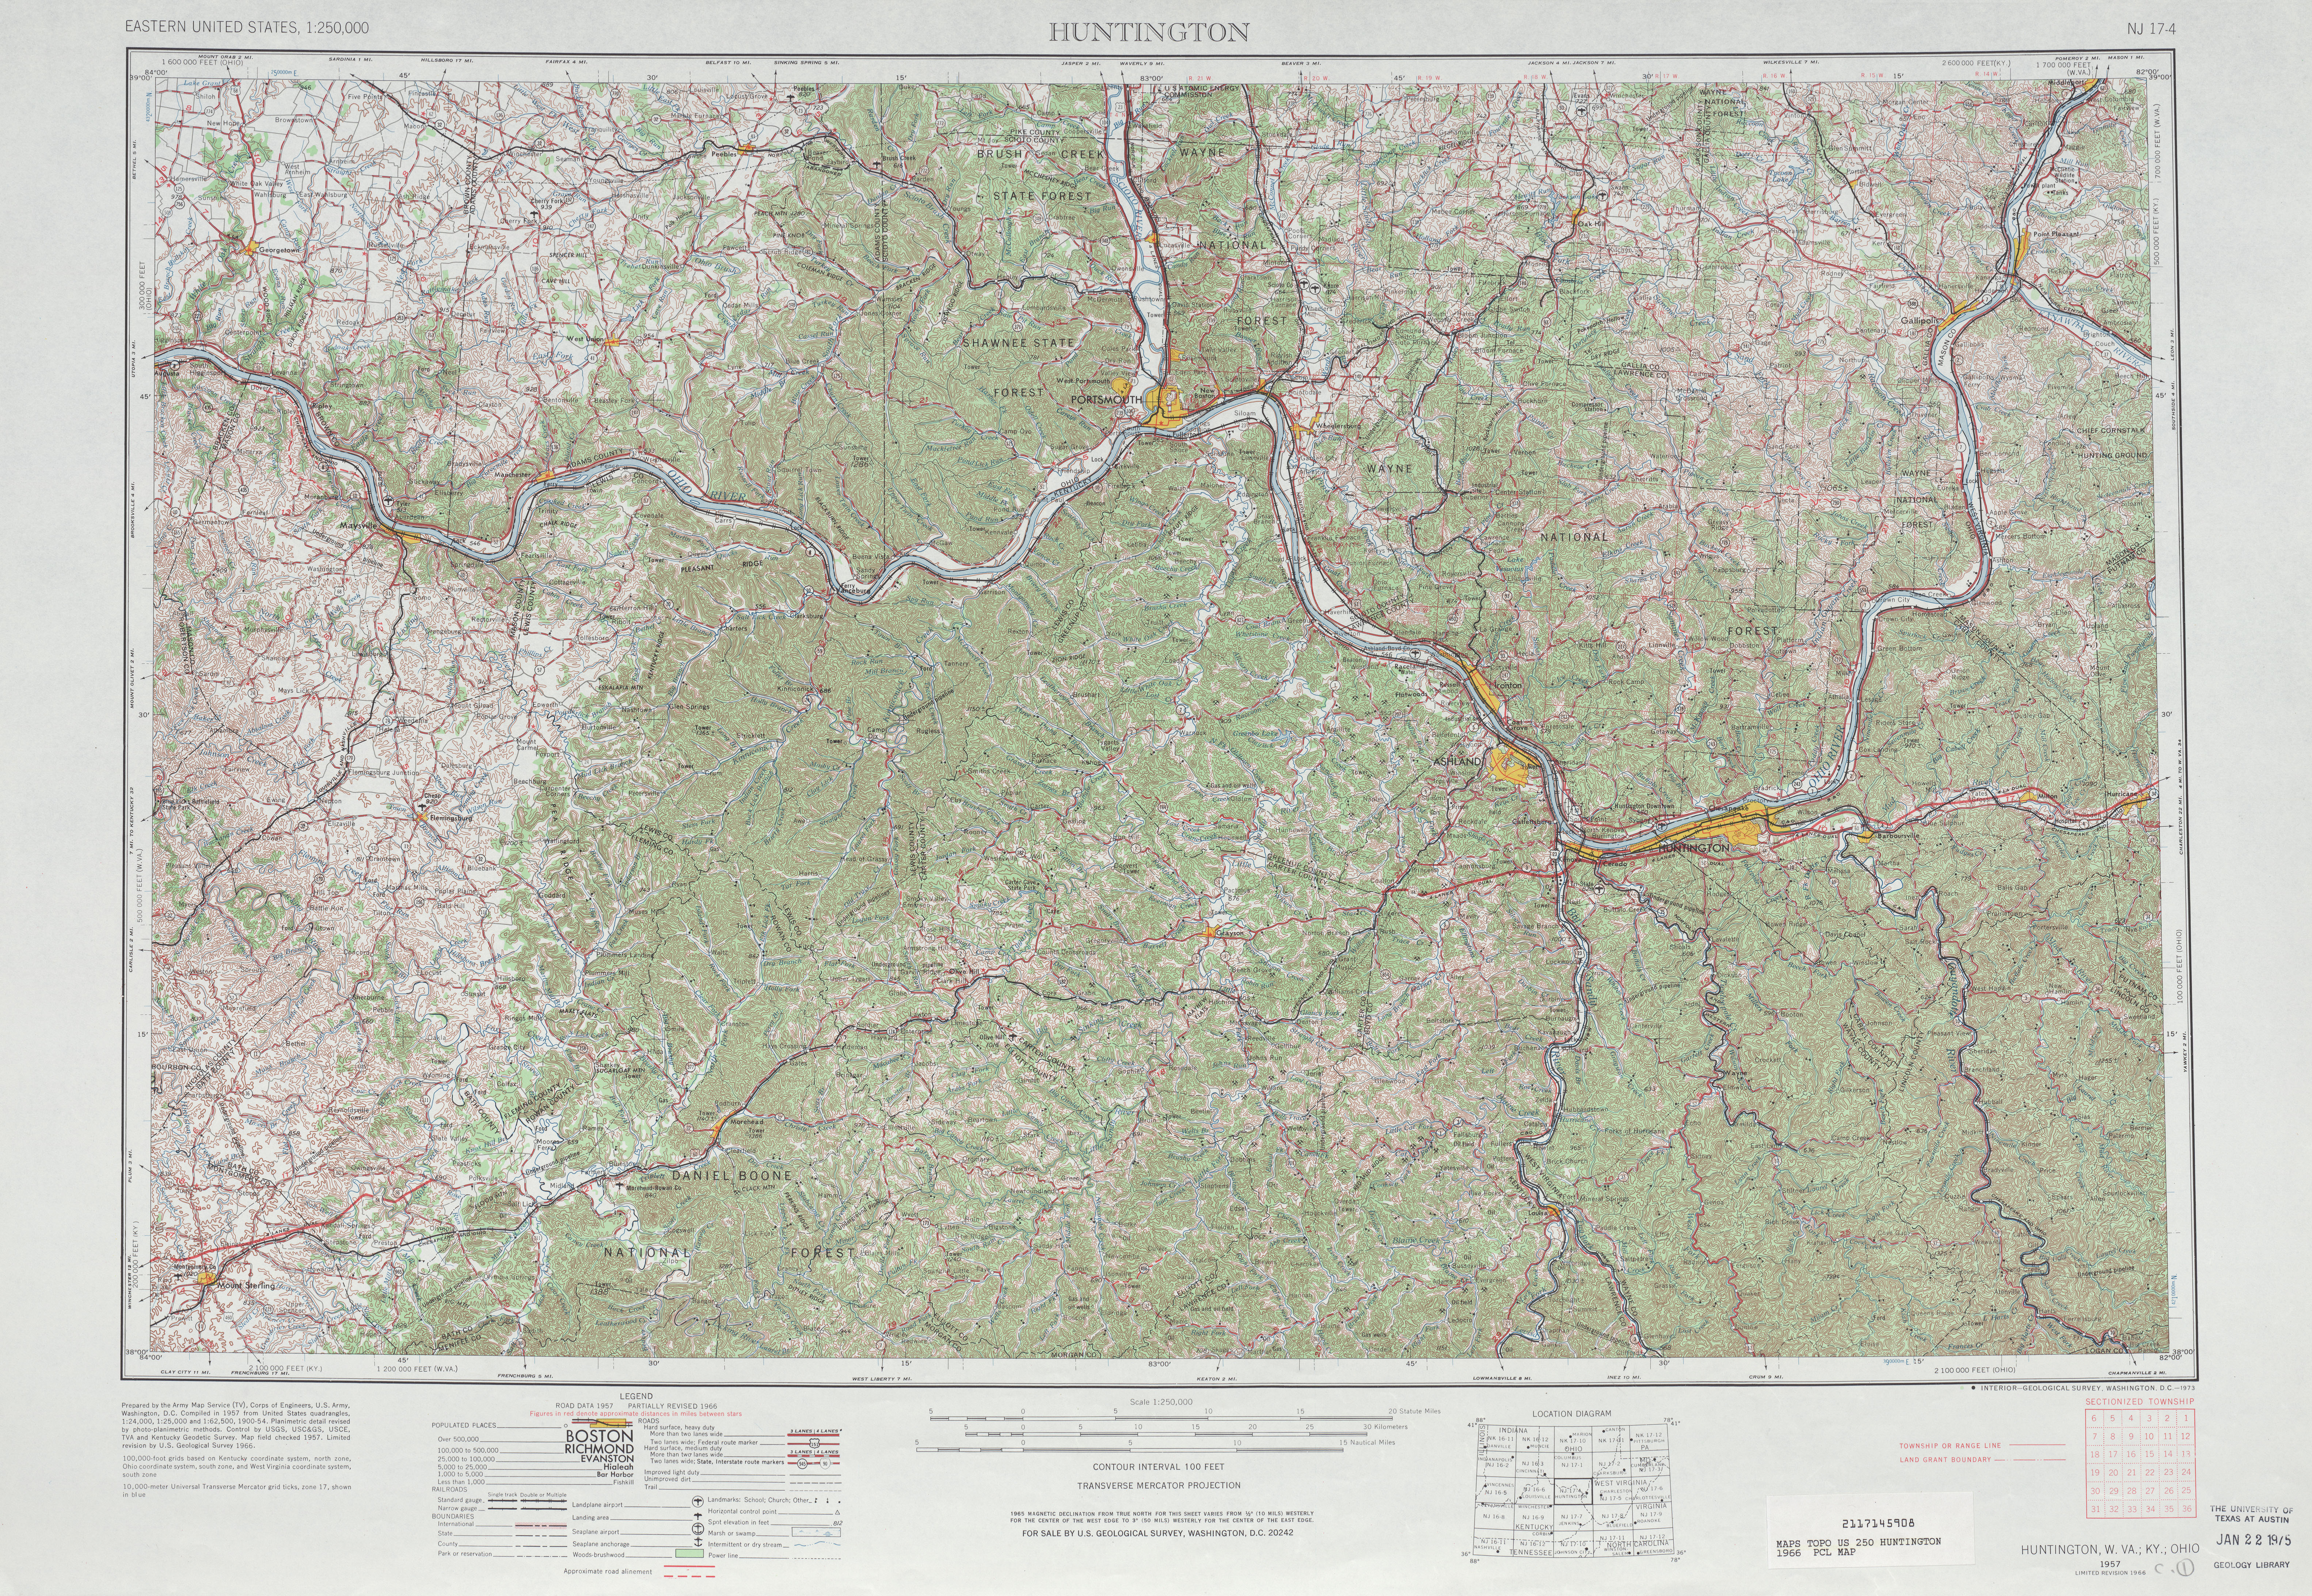 Huntington Topographic Map Sheet, United States 1966